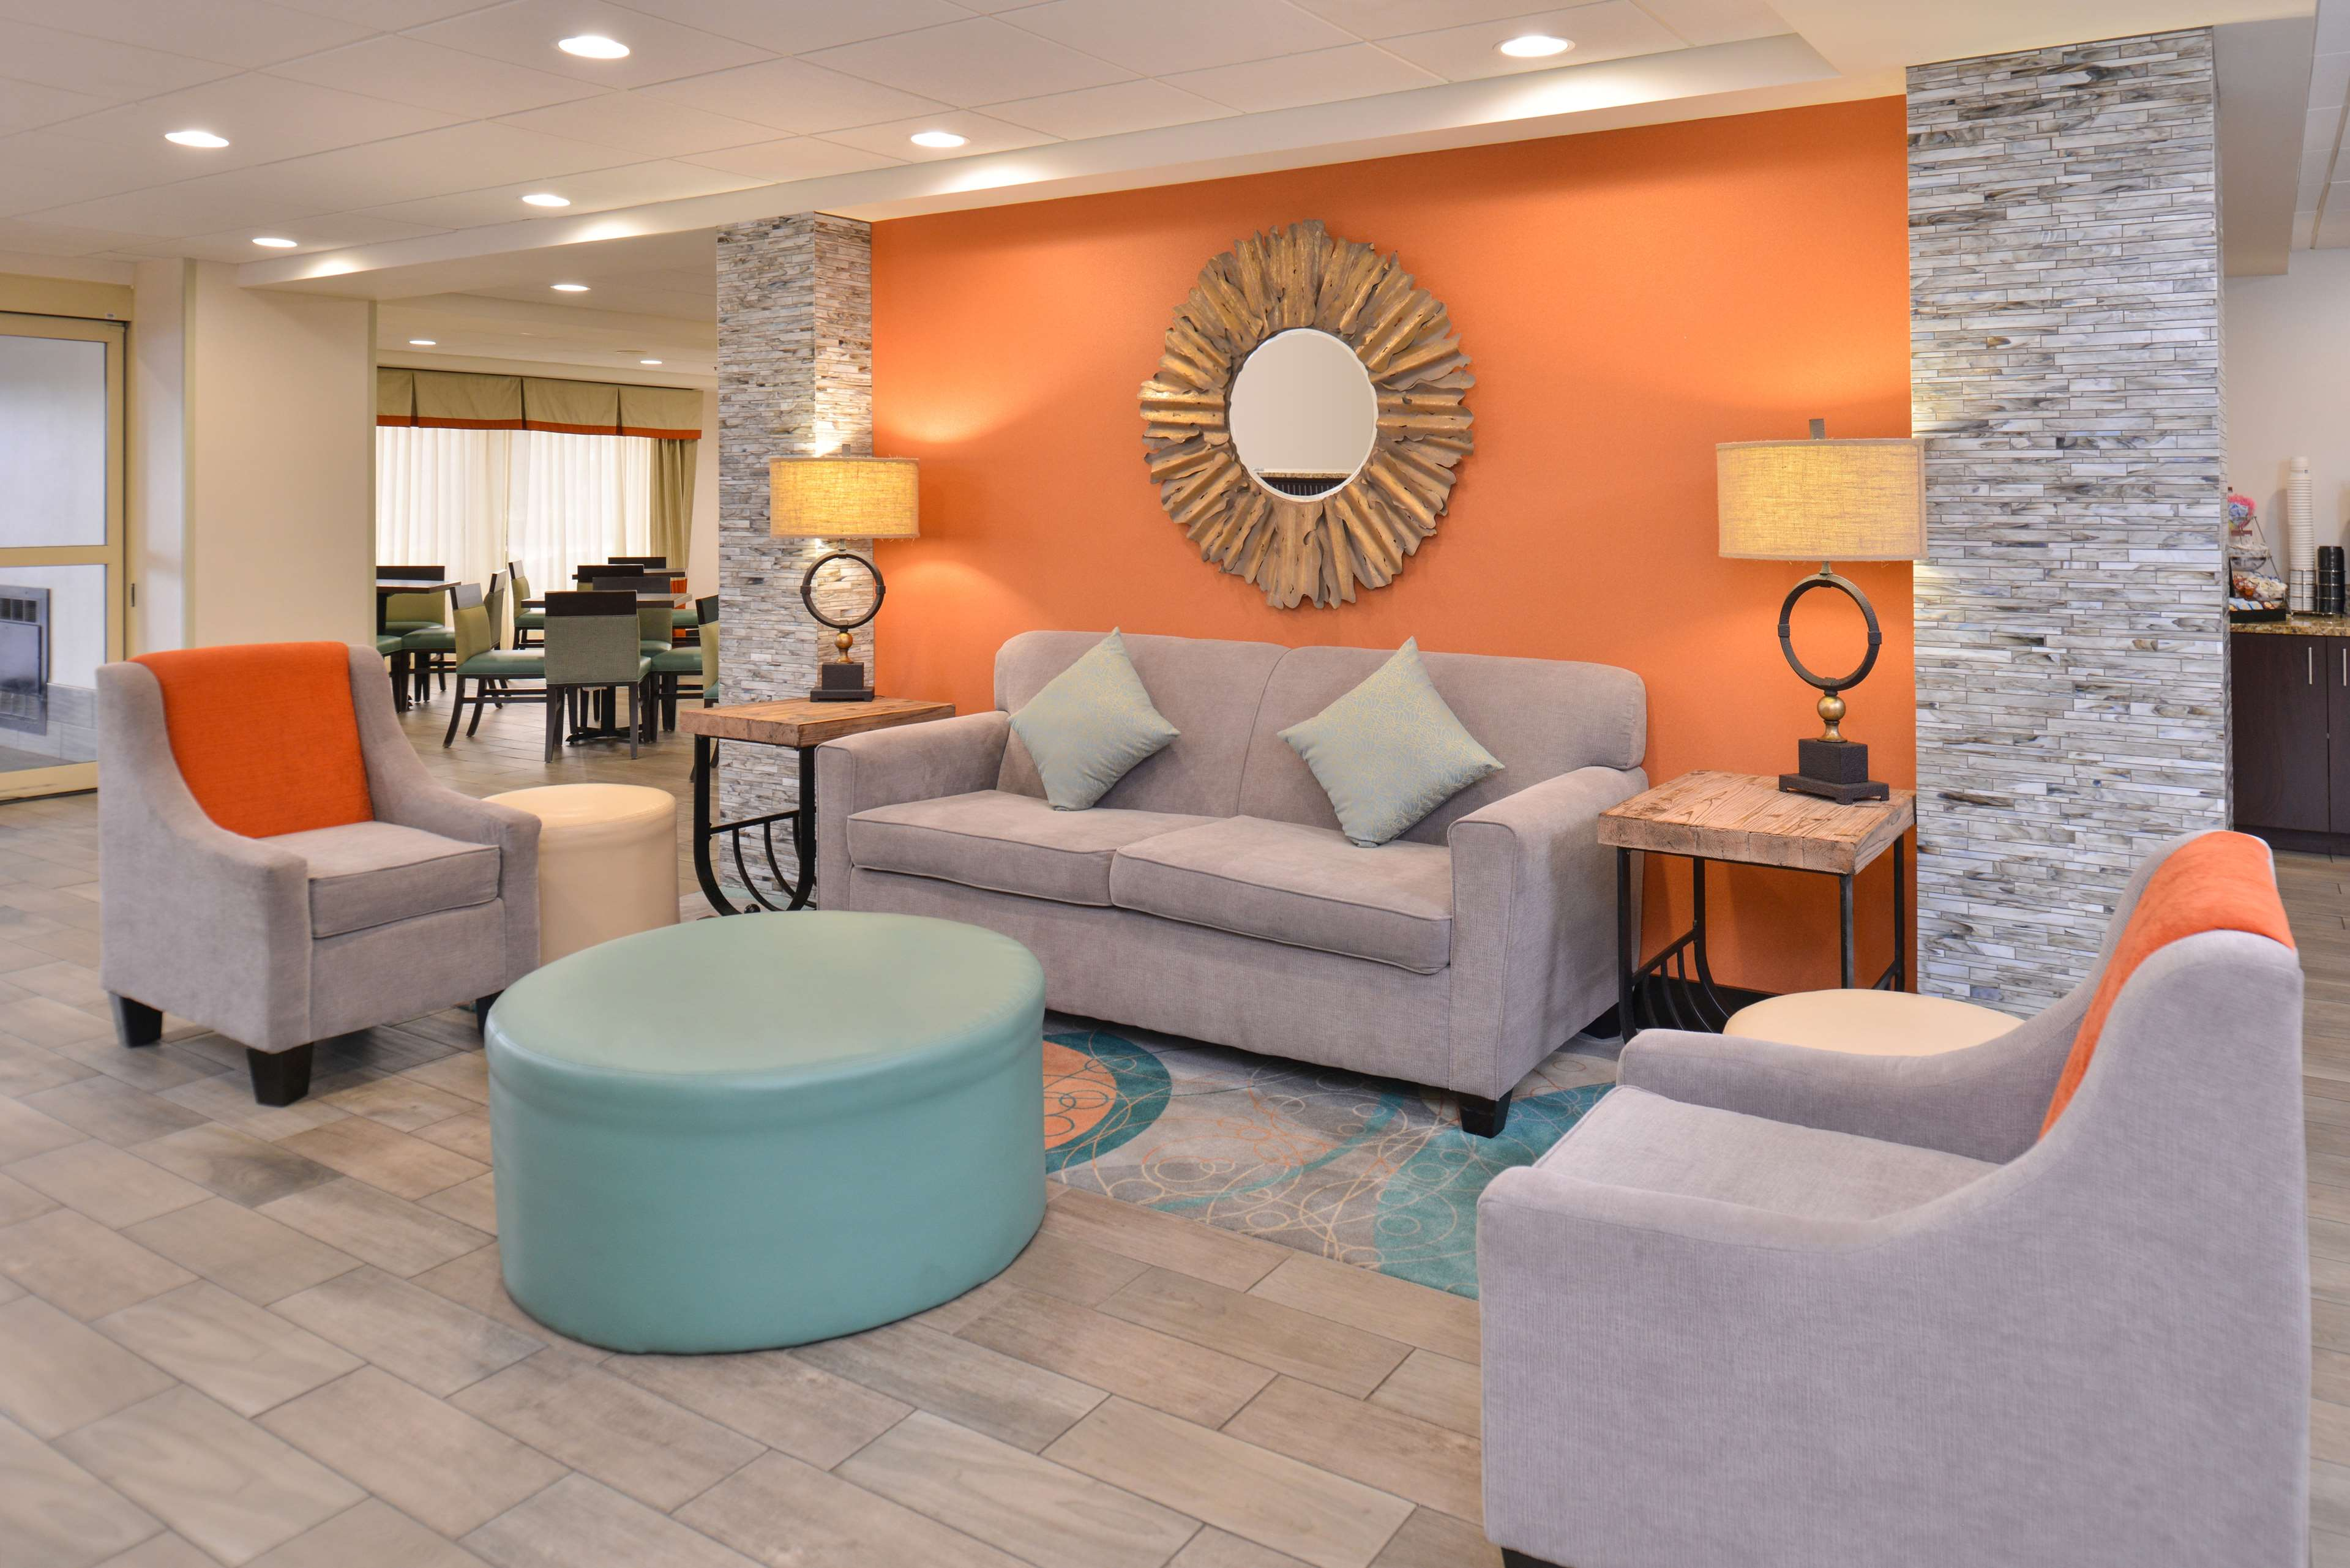 Best Western Plus Chicagoland - Countryside image 14